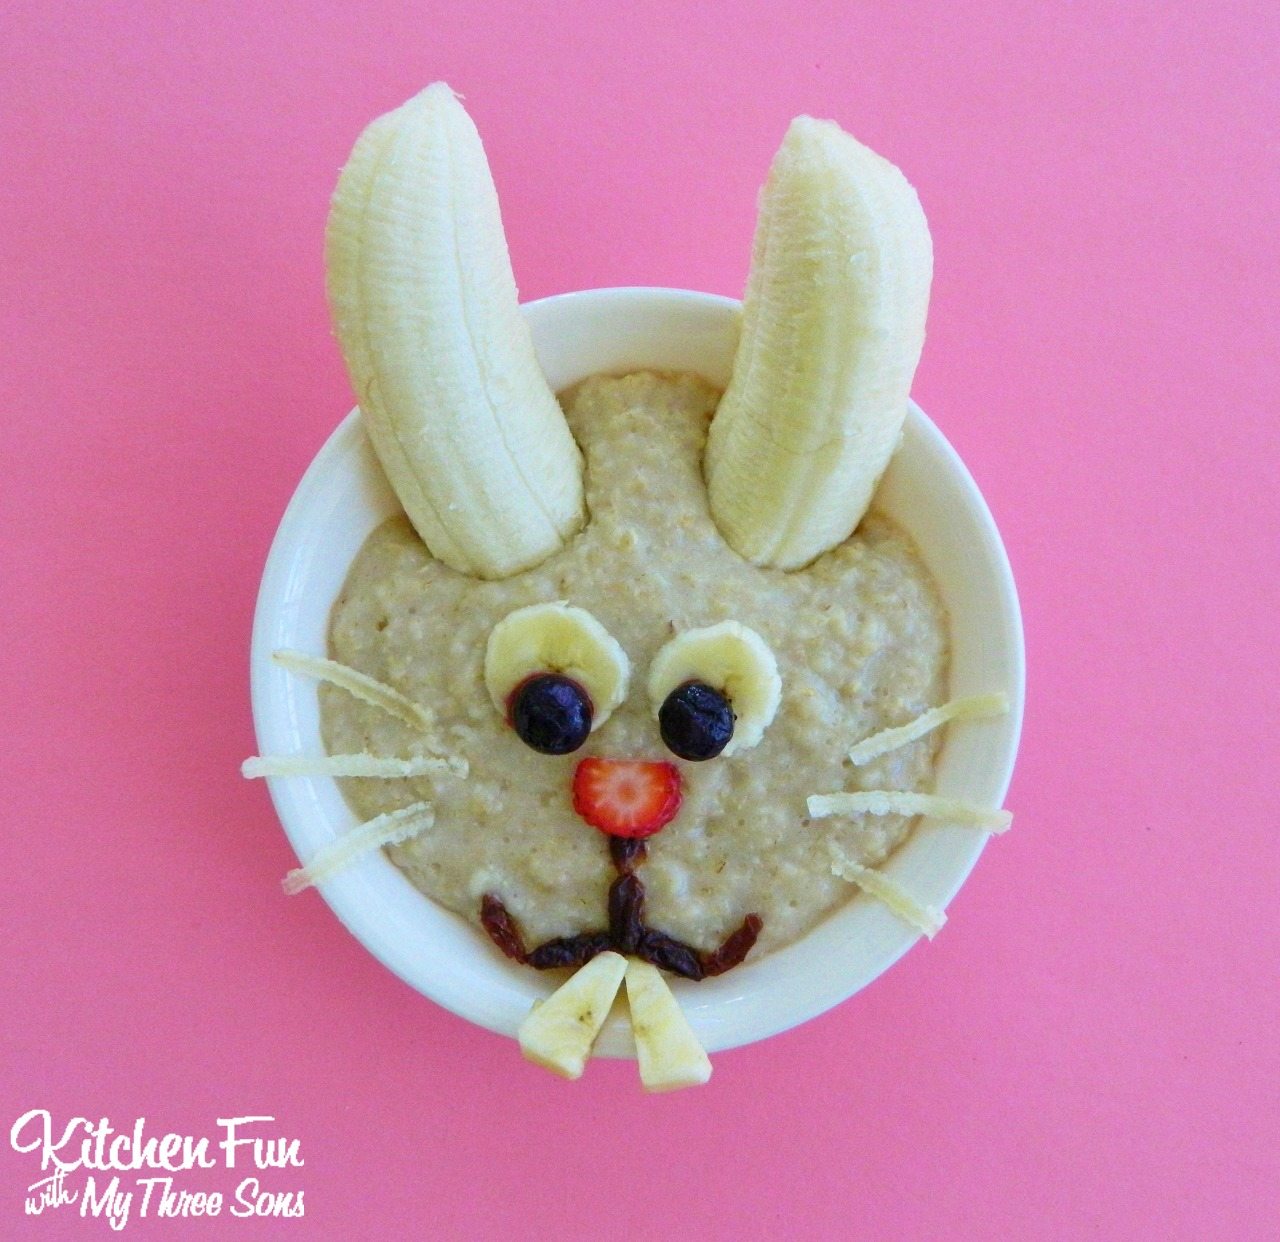 Kitchen Fun And Crafty Friday Link Party 167: Easter Bunny Oatmeal Breakfast